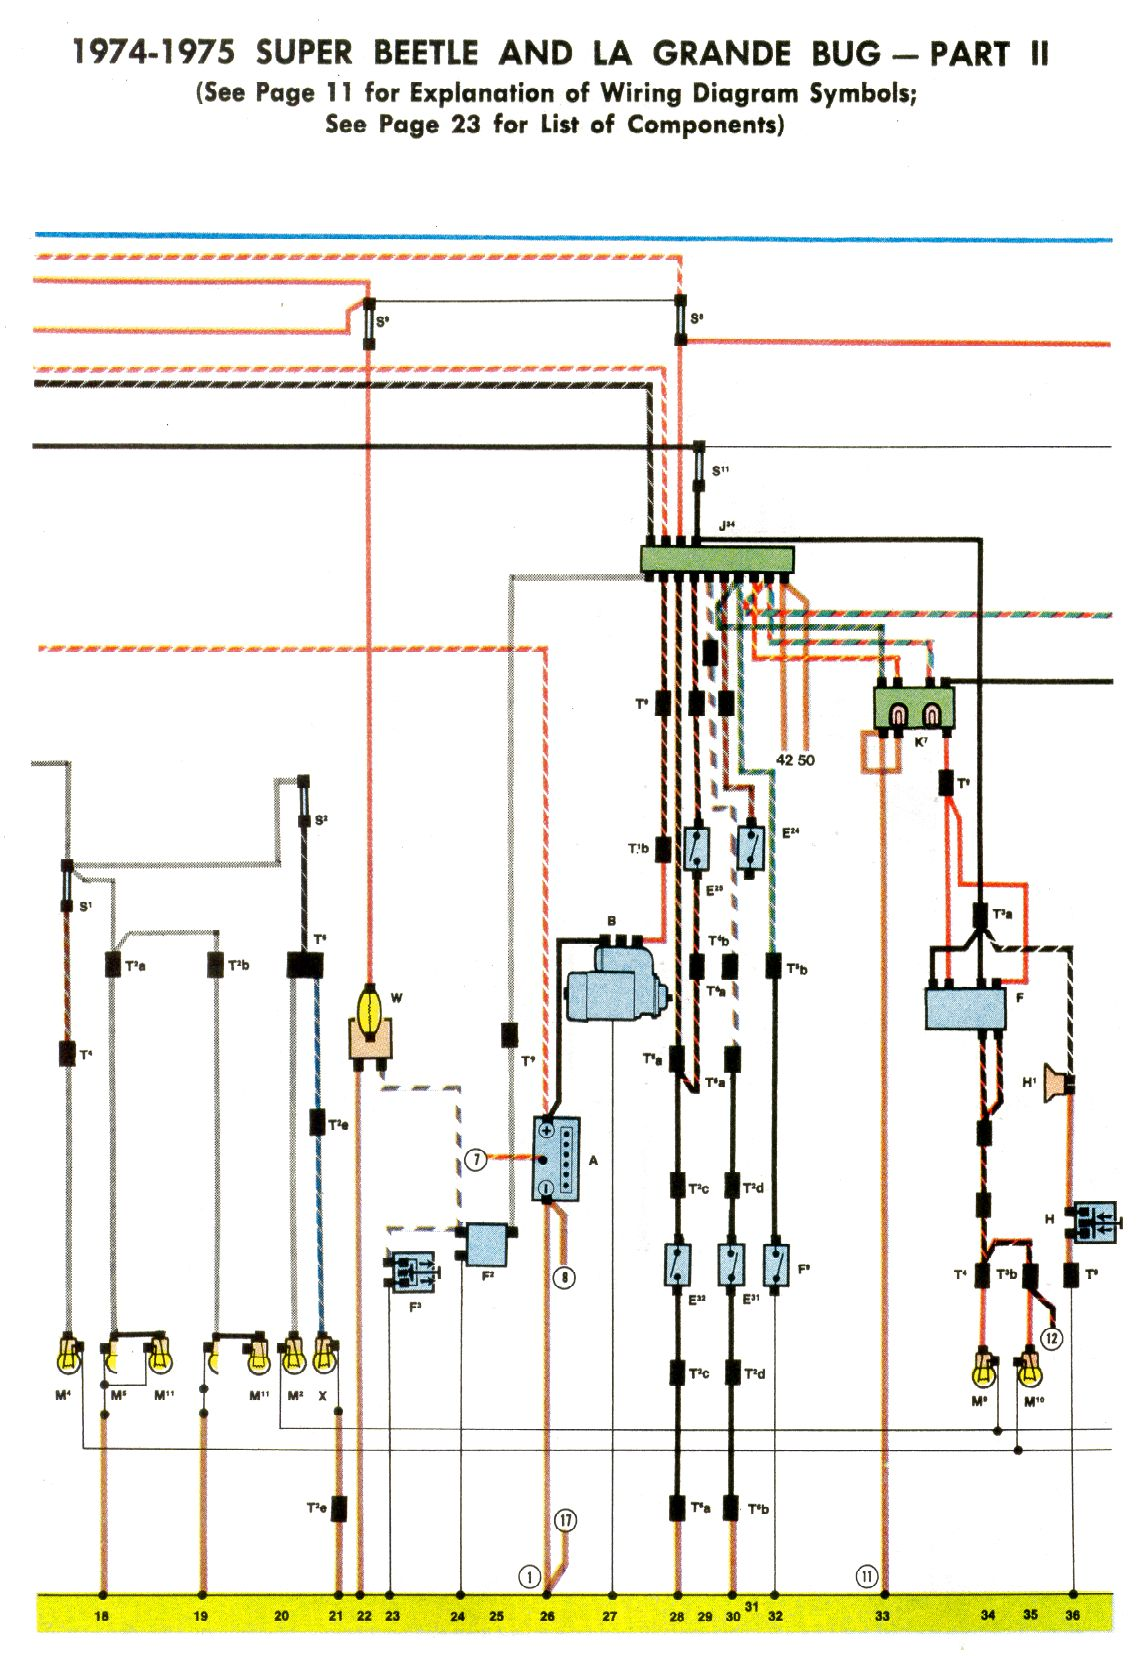 hight resolution of  in those diagrams just doesn t seem to match up quite right then click on the 1303 1974usa green dots in http www vintagebus com wiring index html